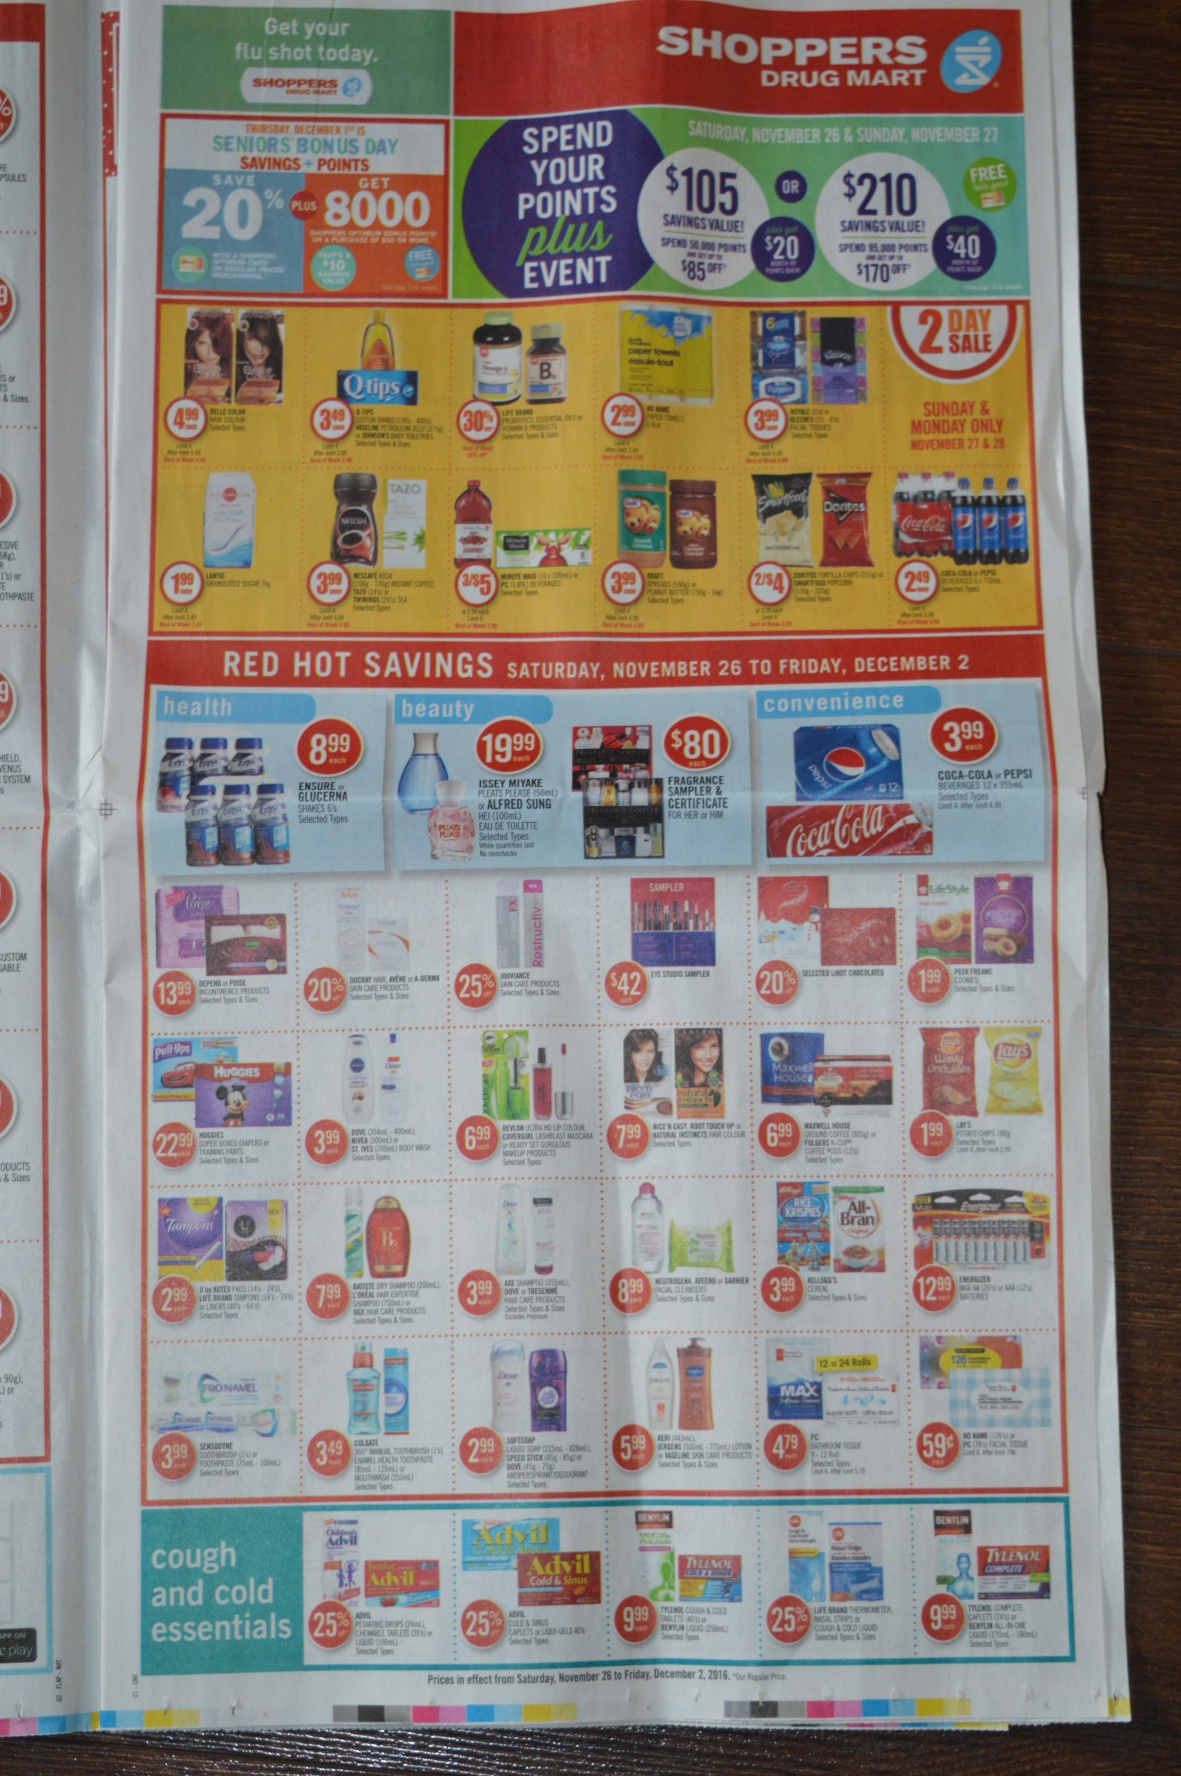 Shoppers Drug Mart Black Friday Flyer Sneak Peek November